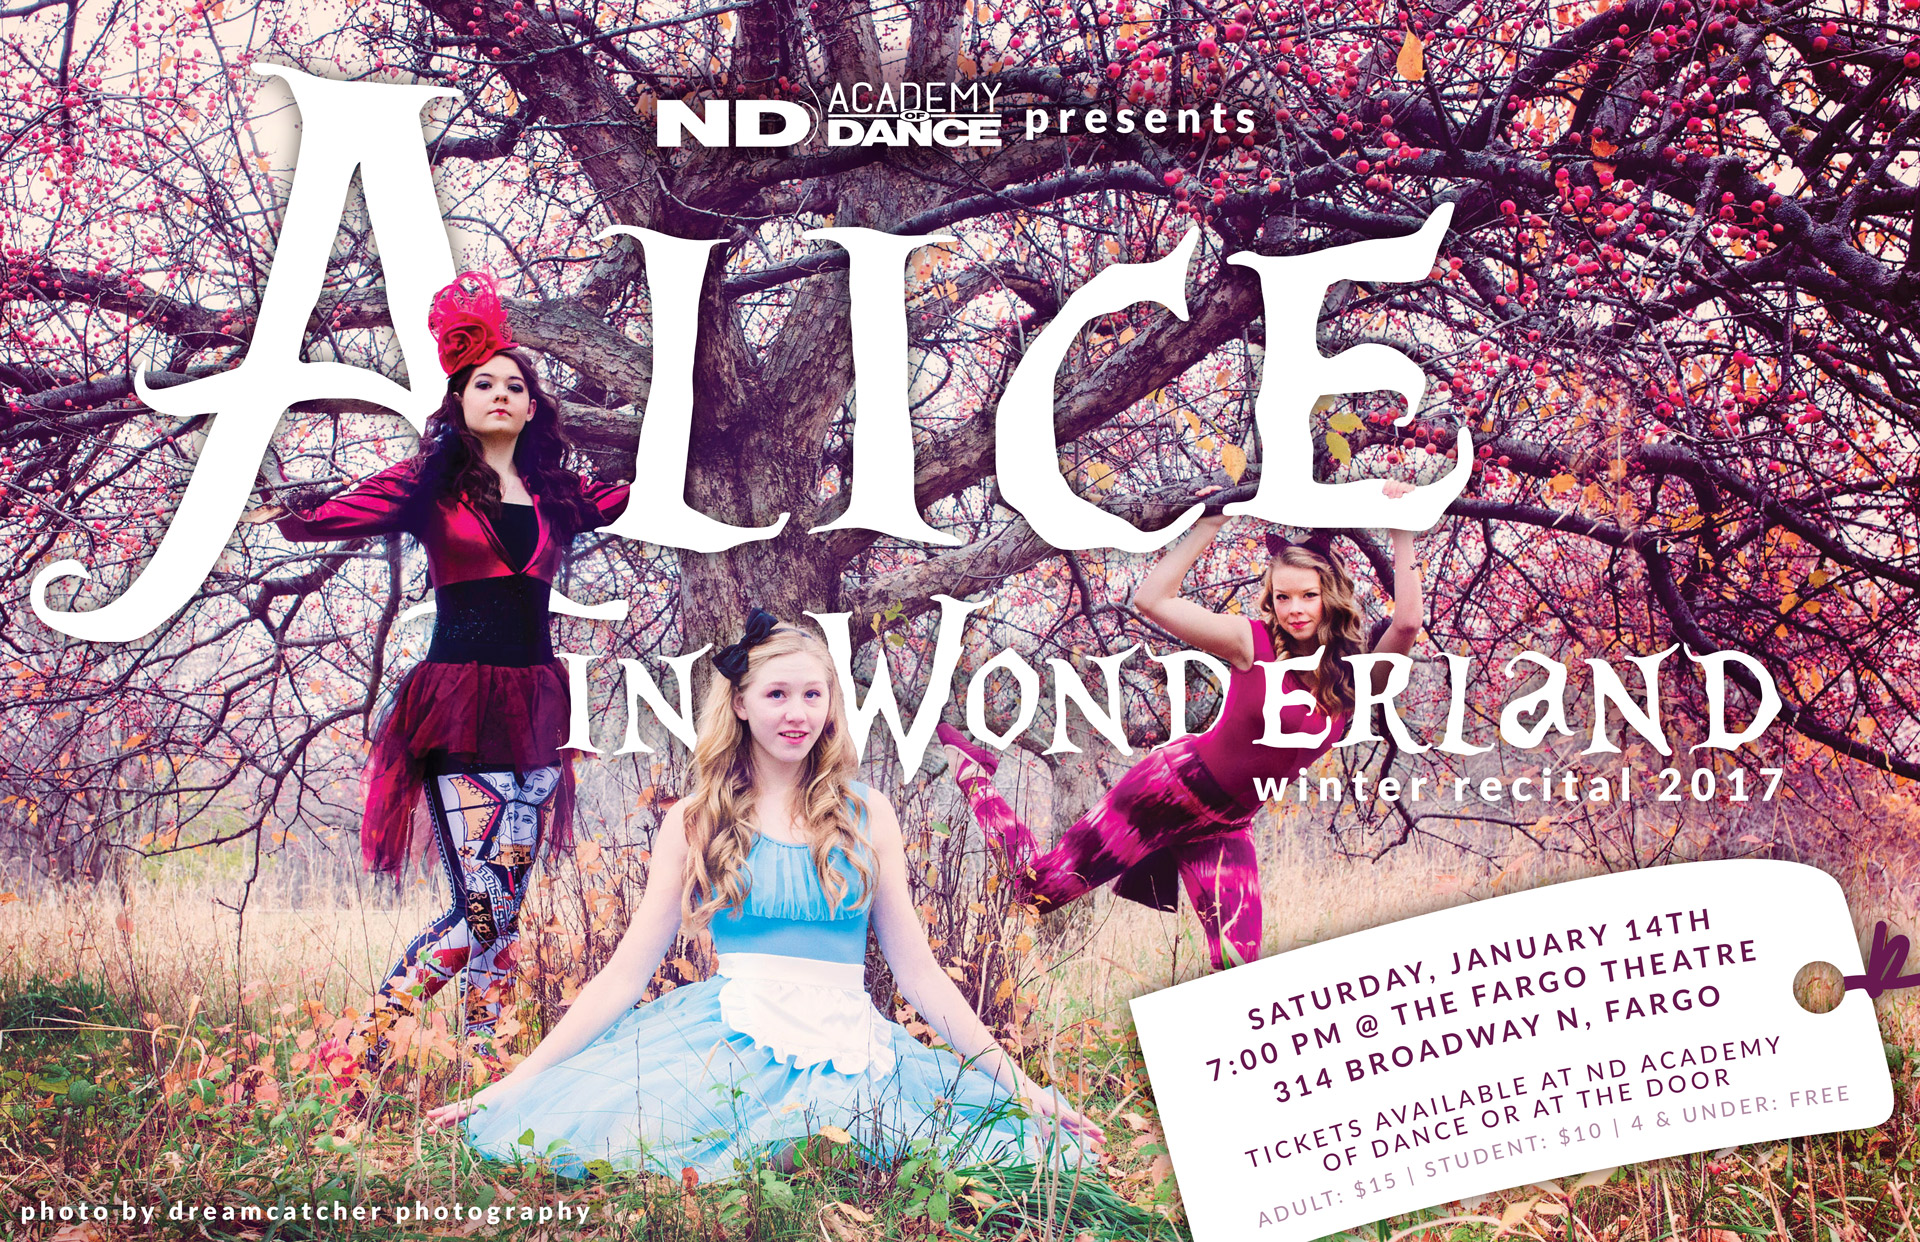 Alice in Wonderland poster with large white lettering and three dancers dressed as Alice, Queen of Hearts, and Cheshire Cat